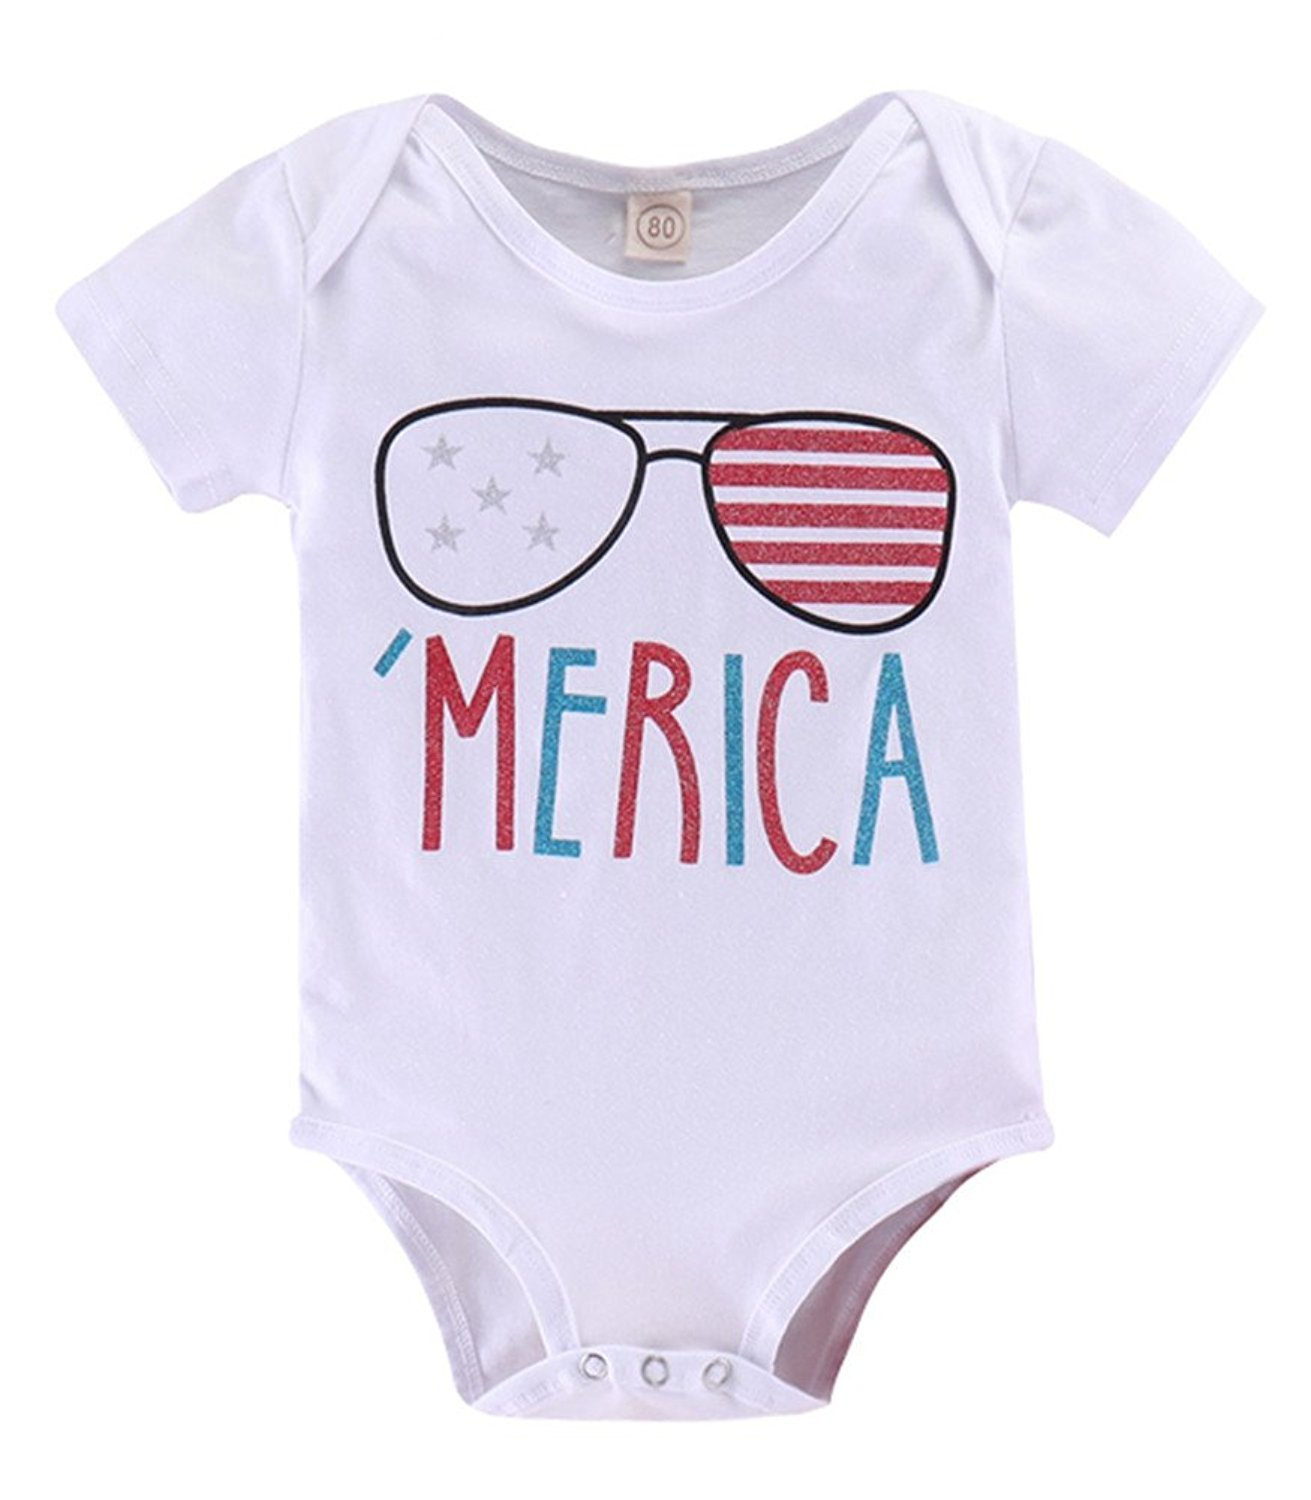 UNIQUEONE 4th of July Toddler Baby Boys Girls Glasses America Romper Short Sleeve Jumpsuit Size 6-12 Months/Tag80 (White)